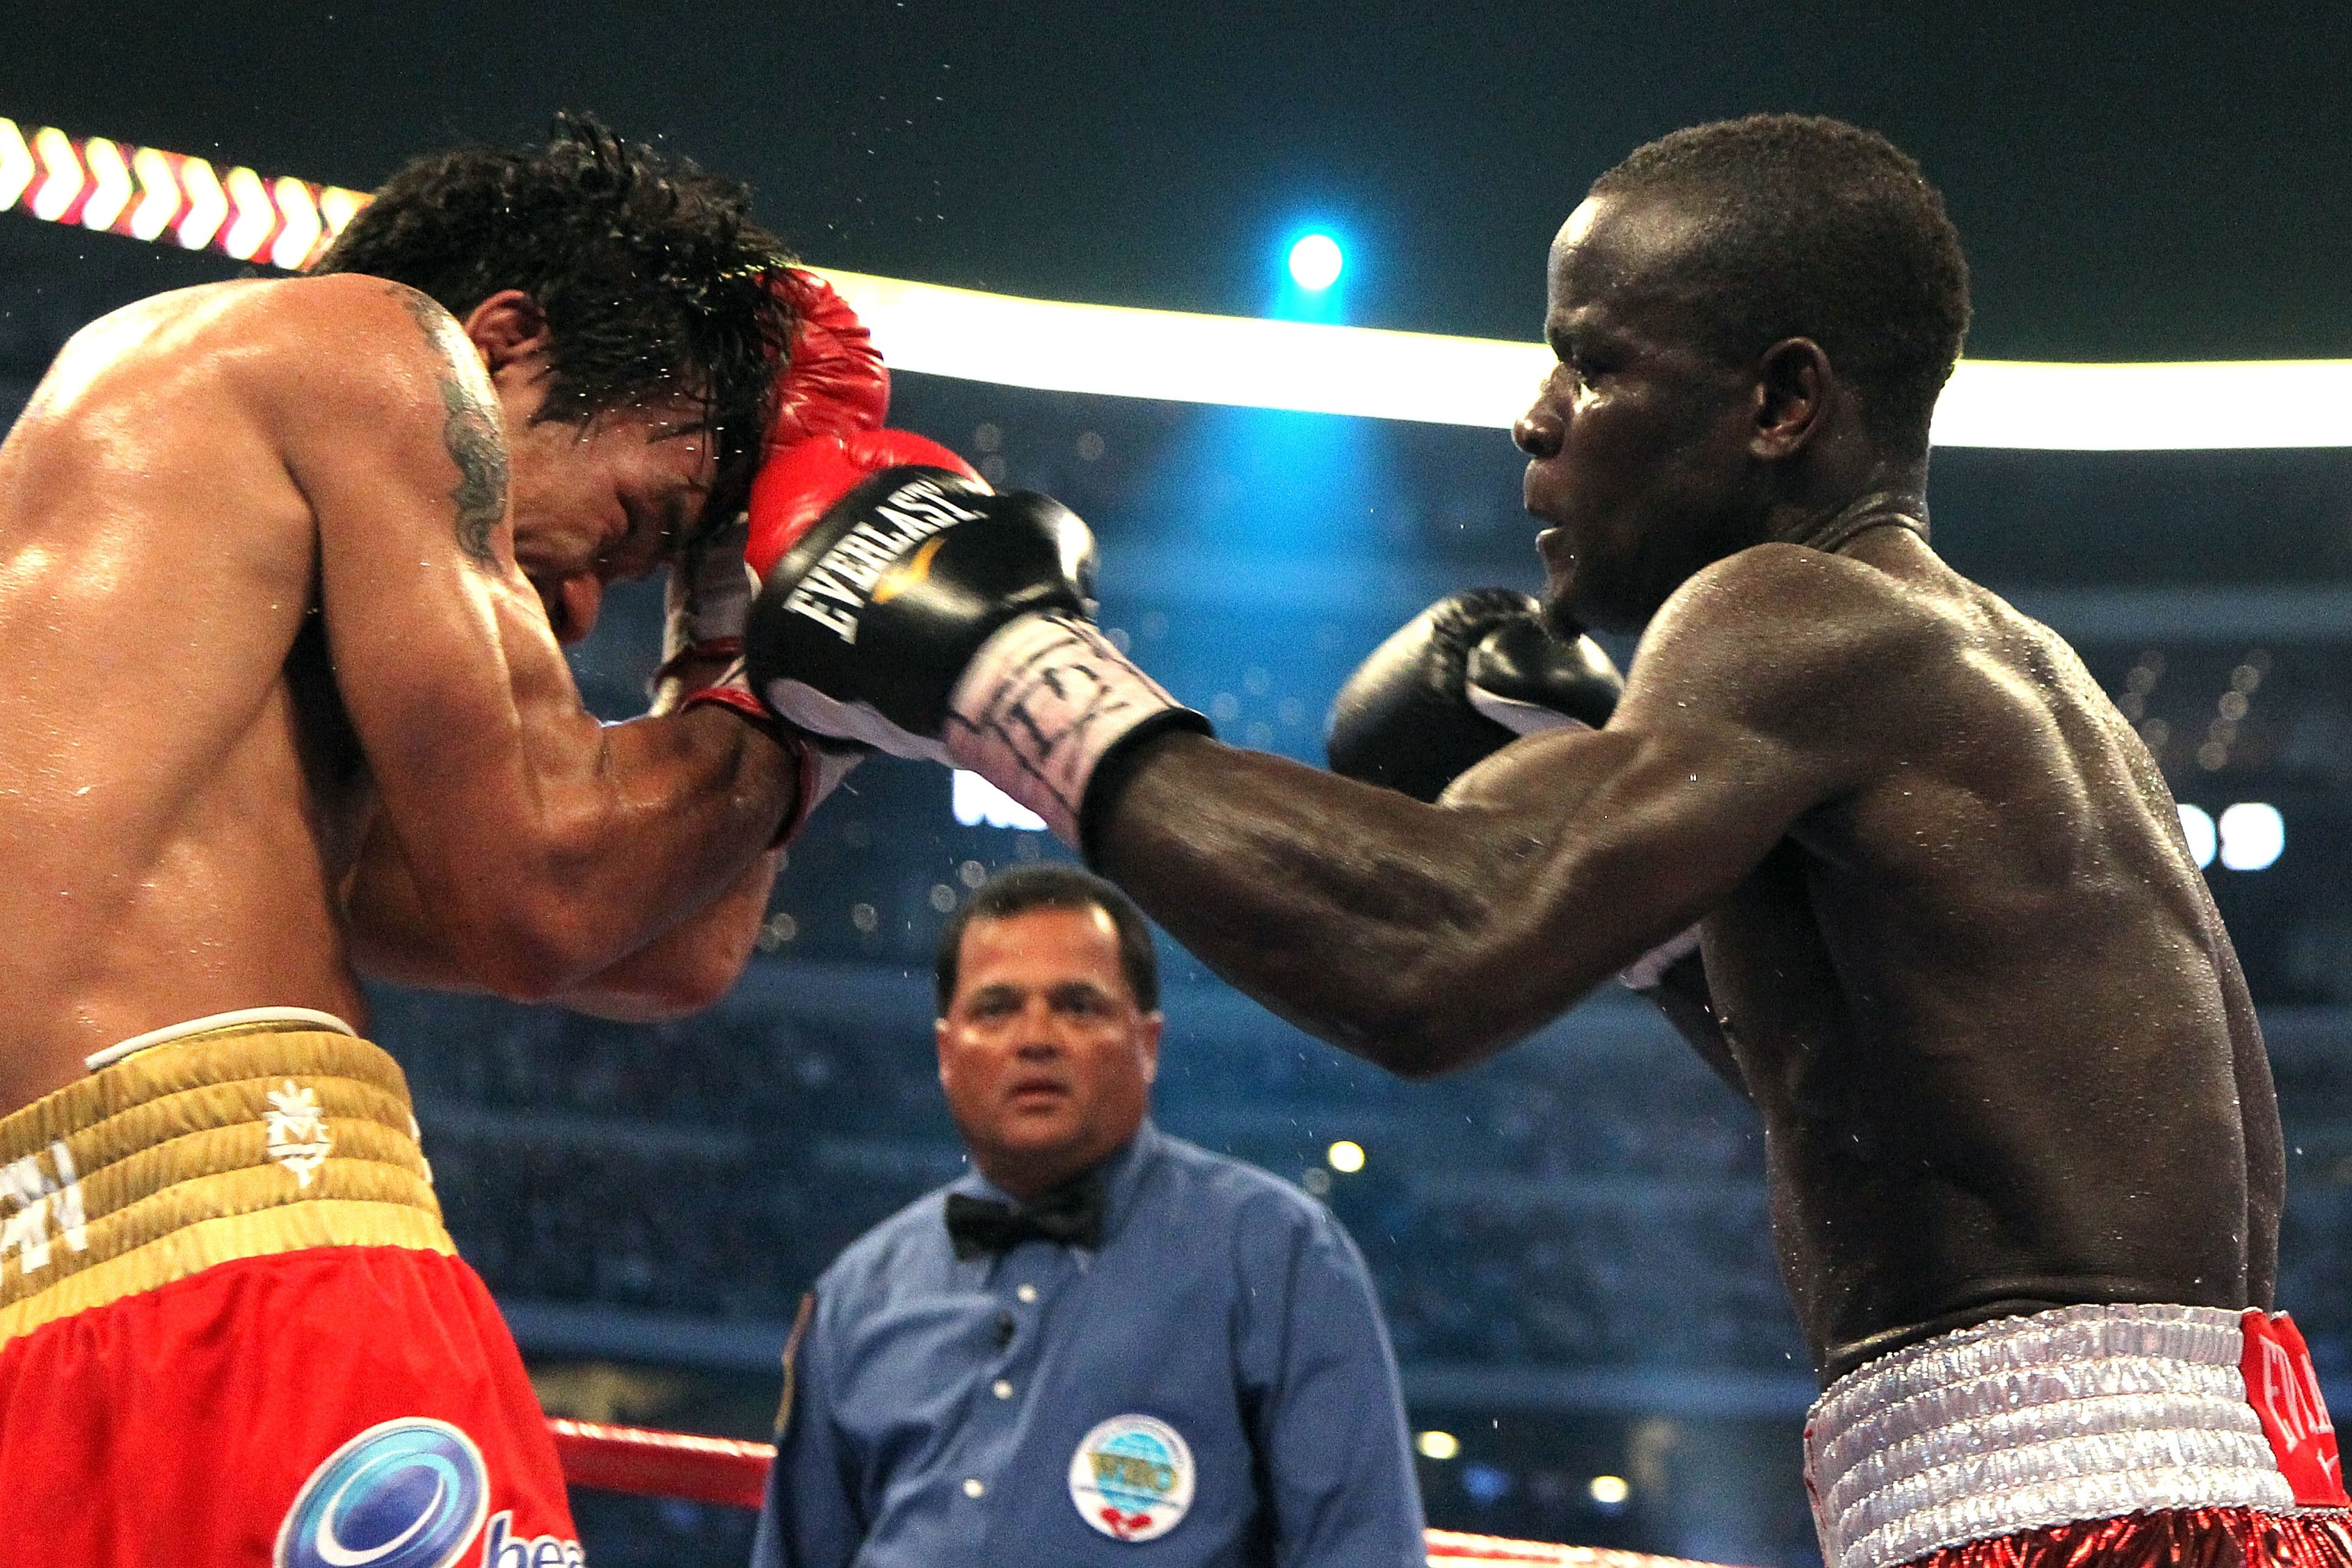 ARLINGTON, TX - MARCH 13:  (R-L) Joshua Clottey of Ghana throws a left to the face of Manny Pacquiao of the Philippines during the WBO welterweight title fight at Cowboys Stadium on March 13, 2010 in Arlington, Texas.  (Photo by Jed Jacobsohn/Getty Images